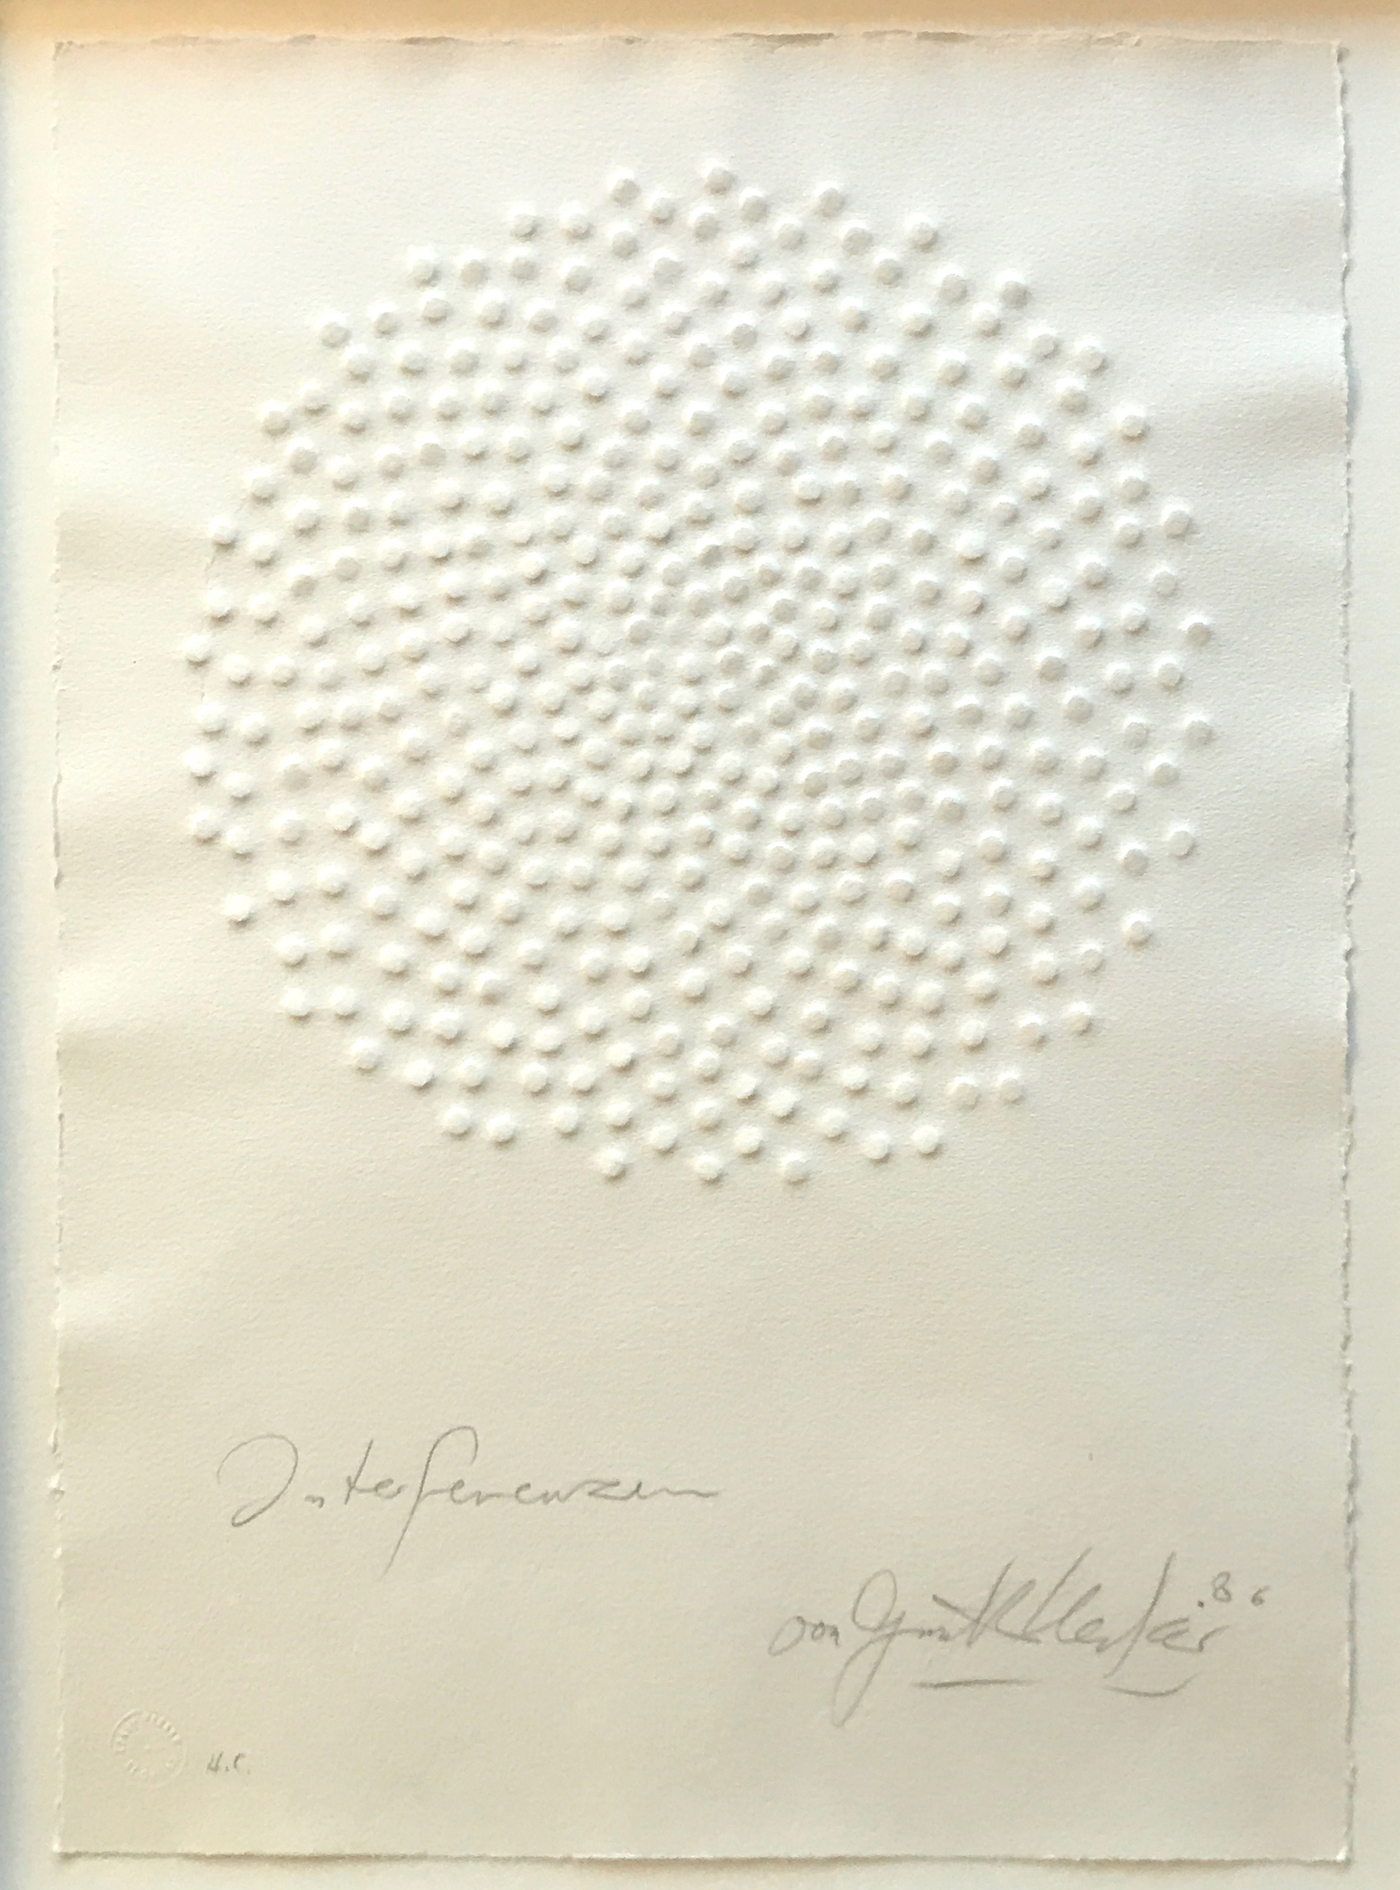 Uecker, Interferenzen, 1986 H.C.